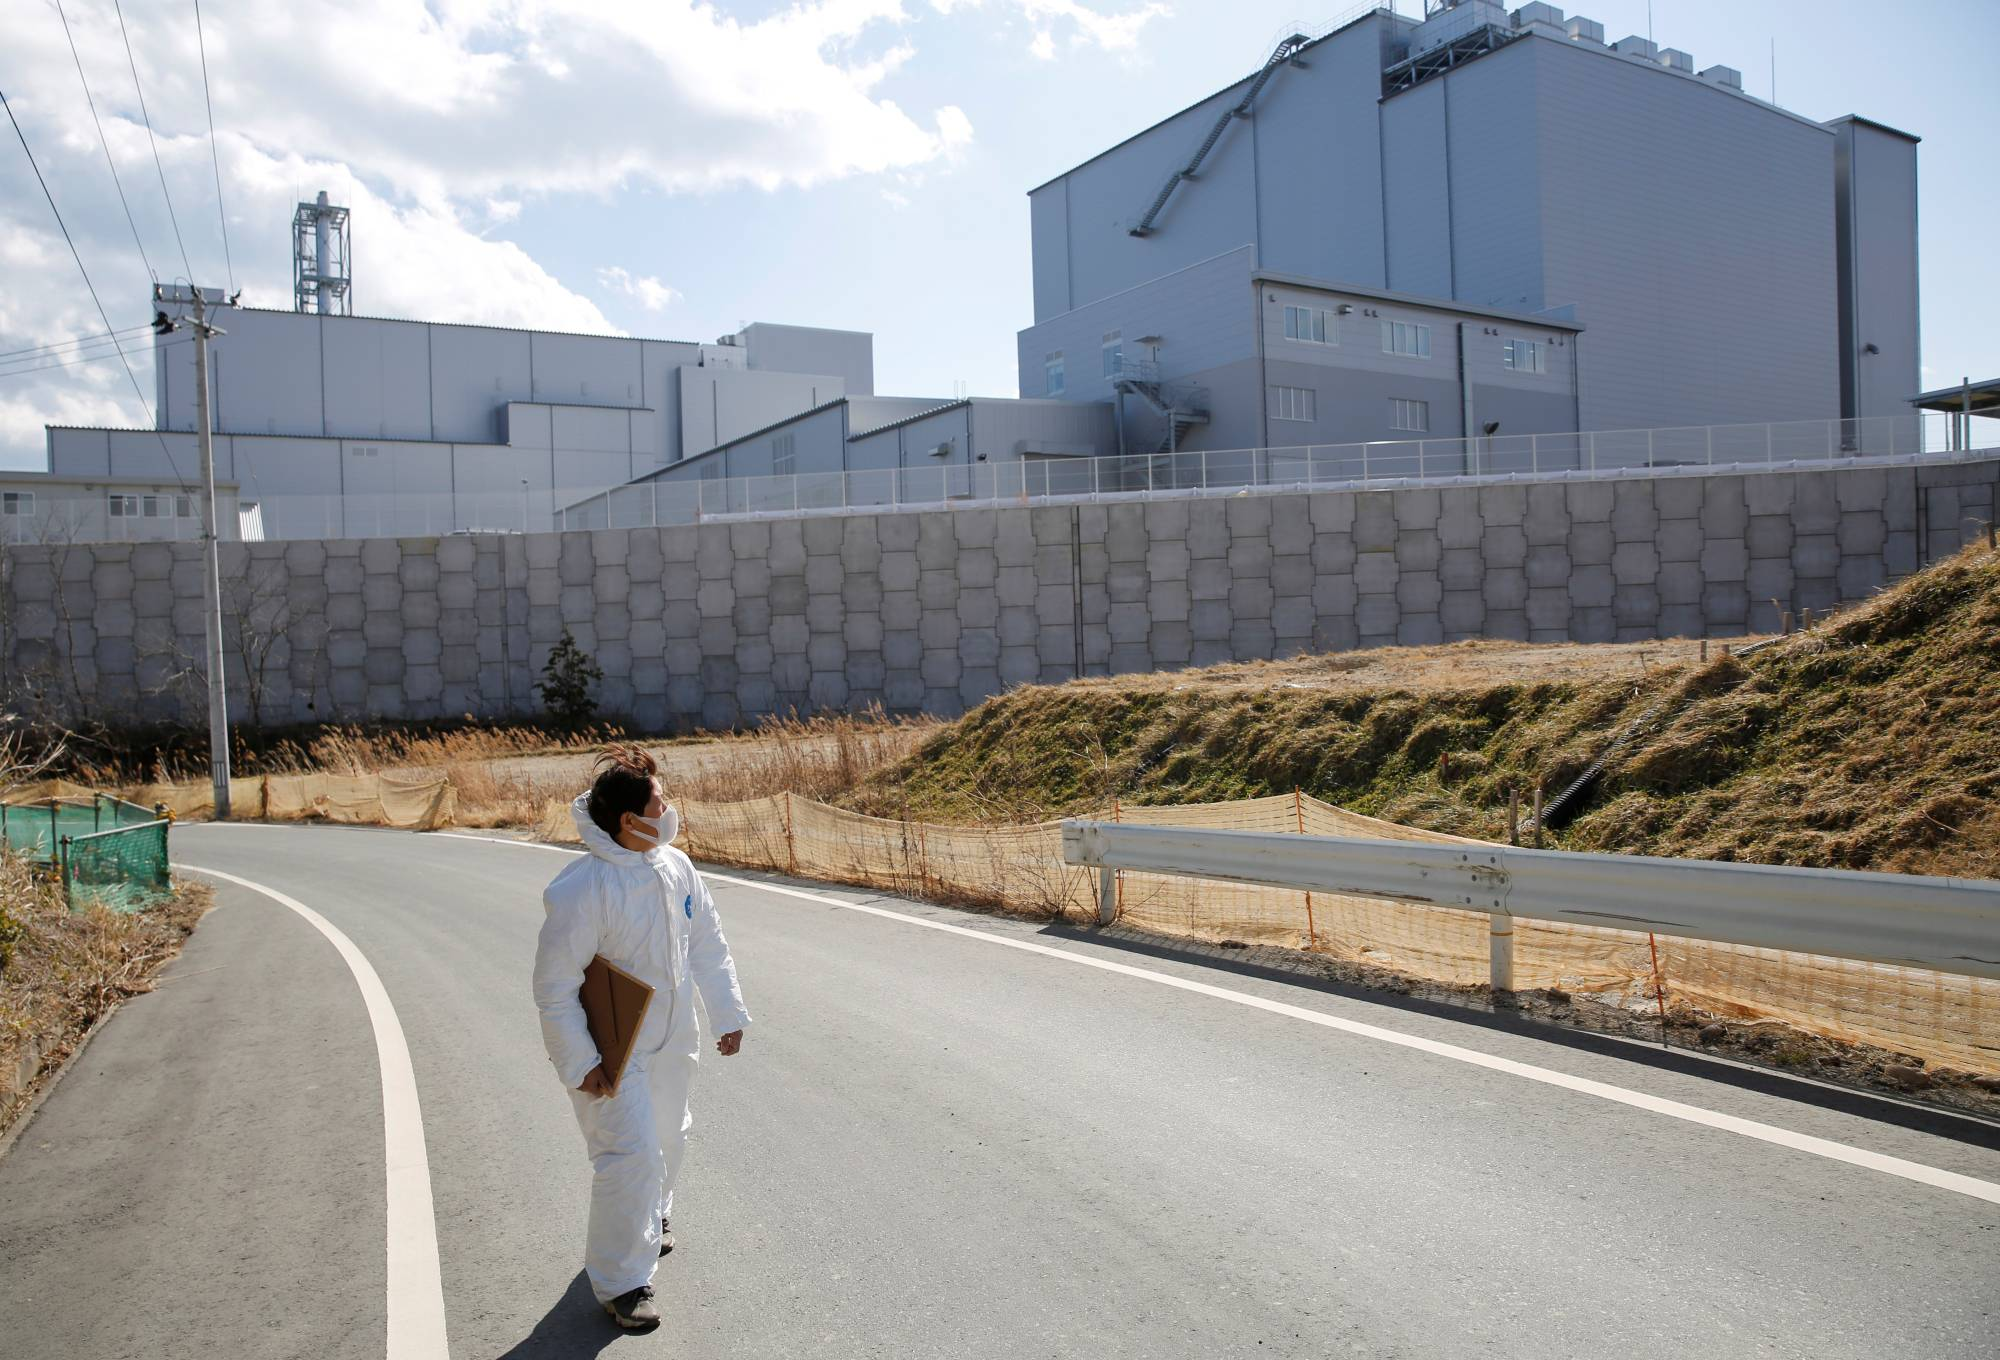 Hisae Unuma wears a protective suit as she walks past an incinerator which was built in a rural village near her collapsing home, where she lived before being evacuated. | REUTERS